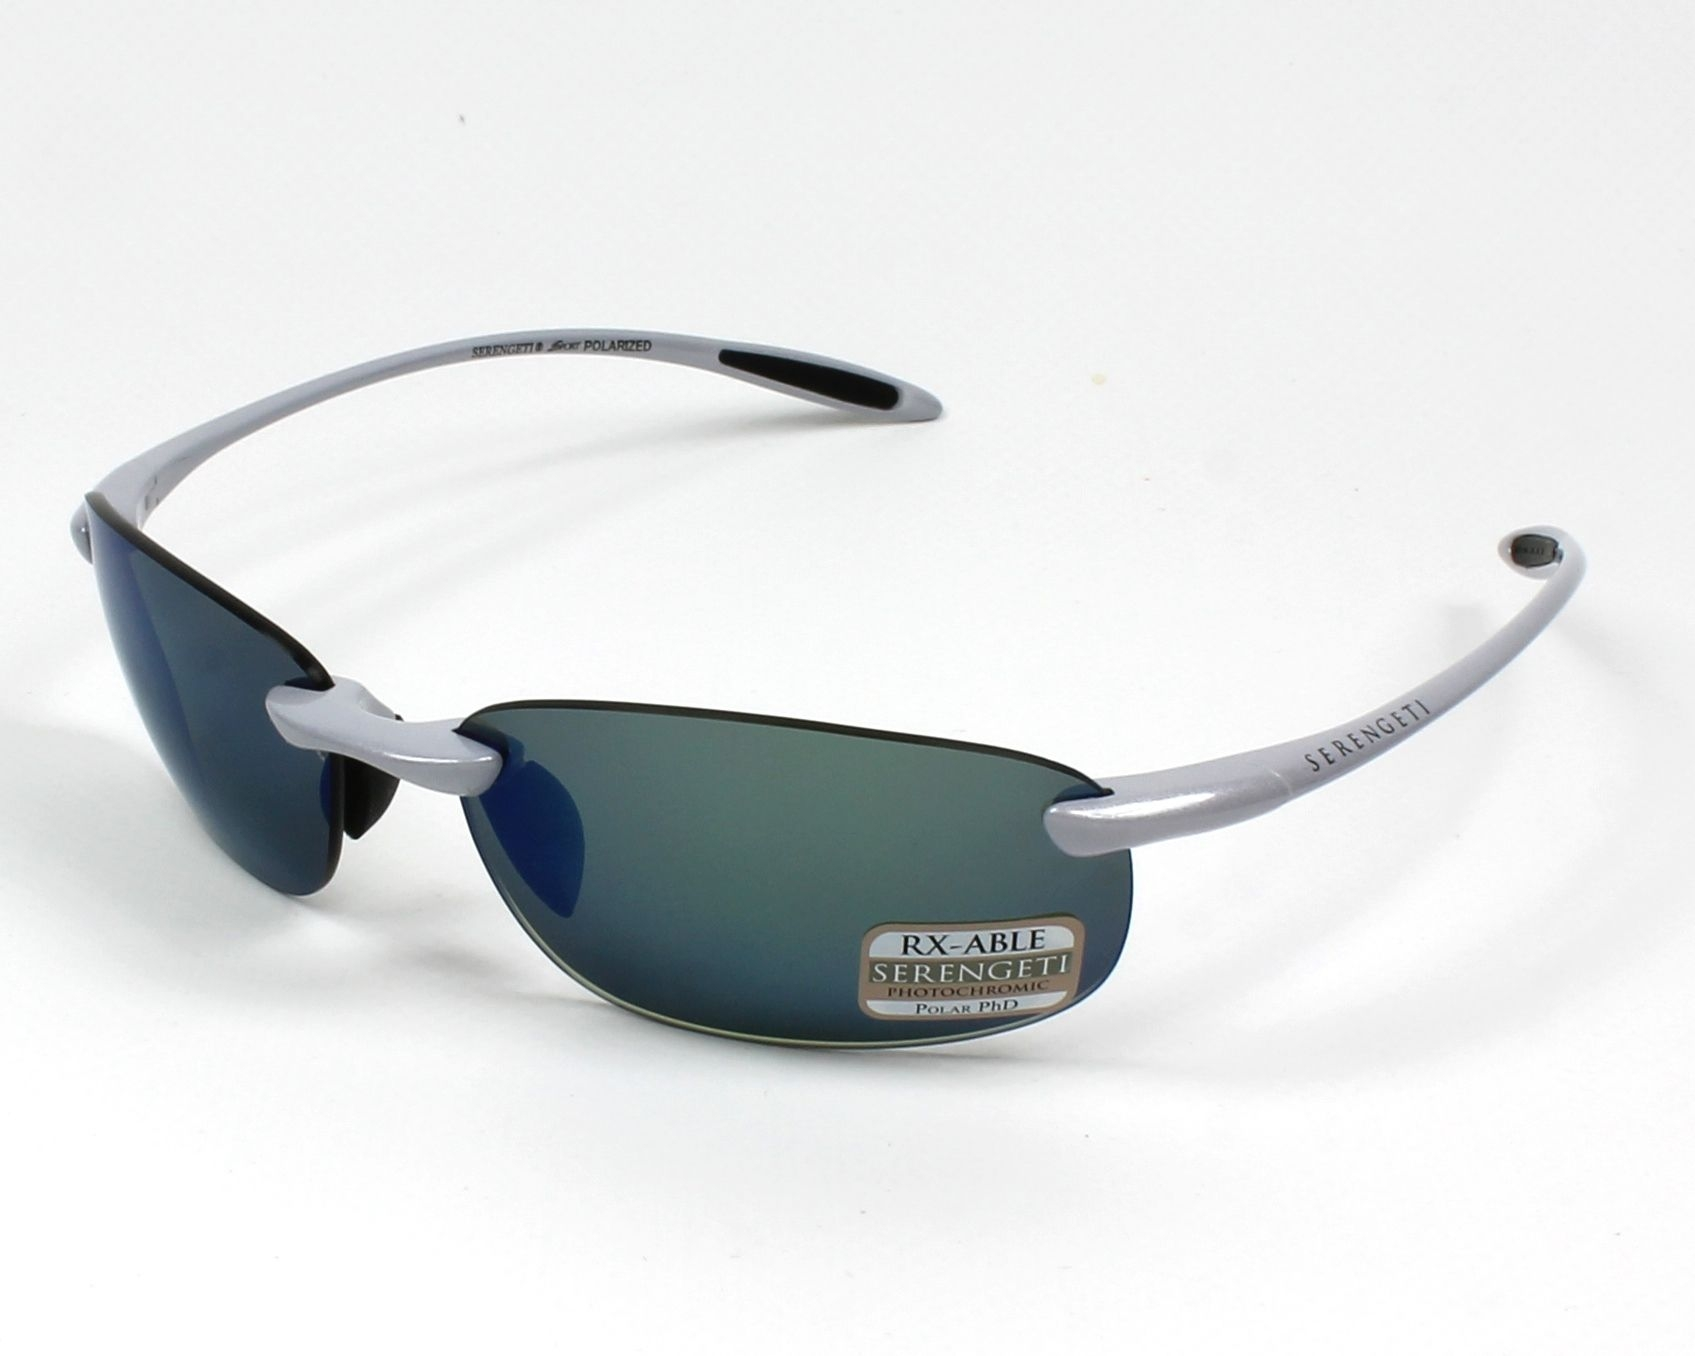 aeafca4ea6 Sunglasses Serengeti NUVOLA 8289 - Blue sky profile view